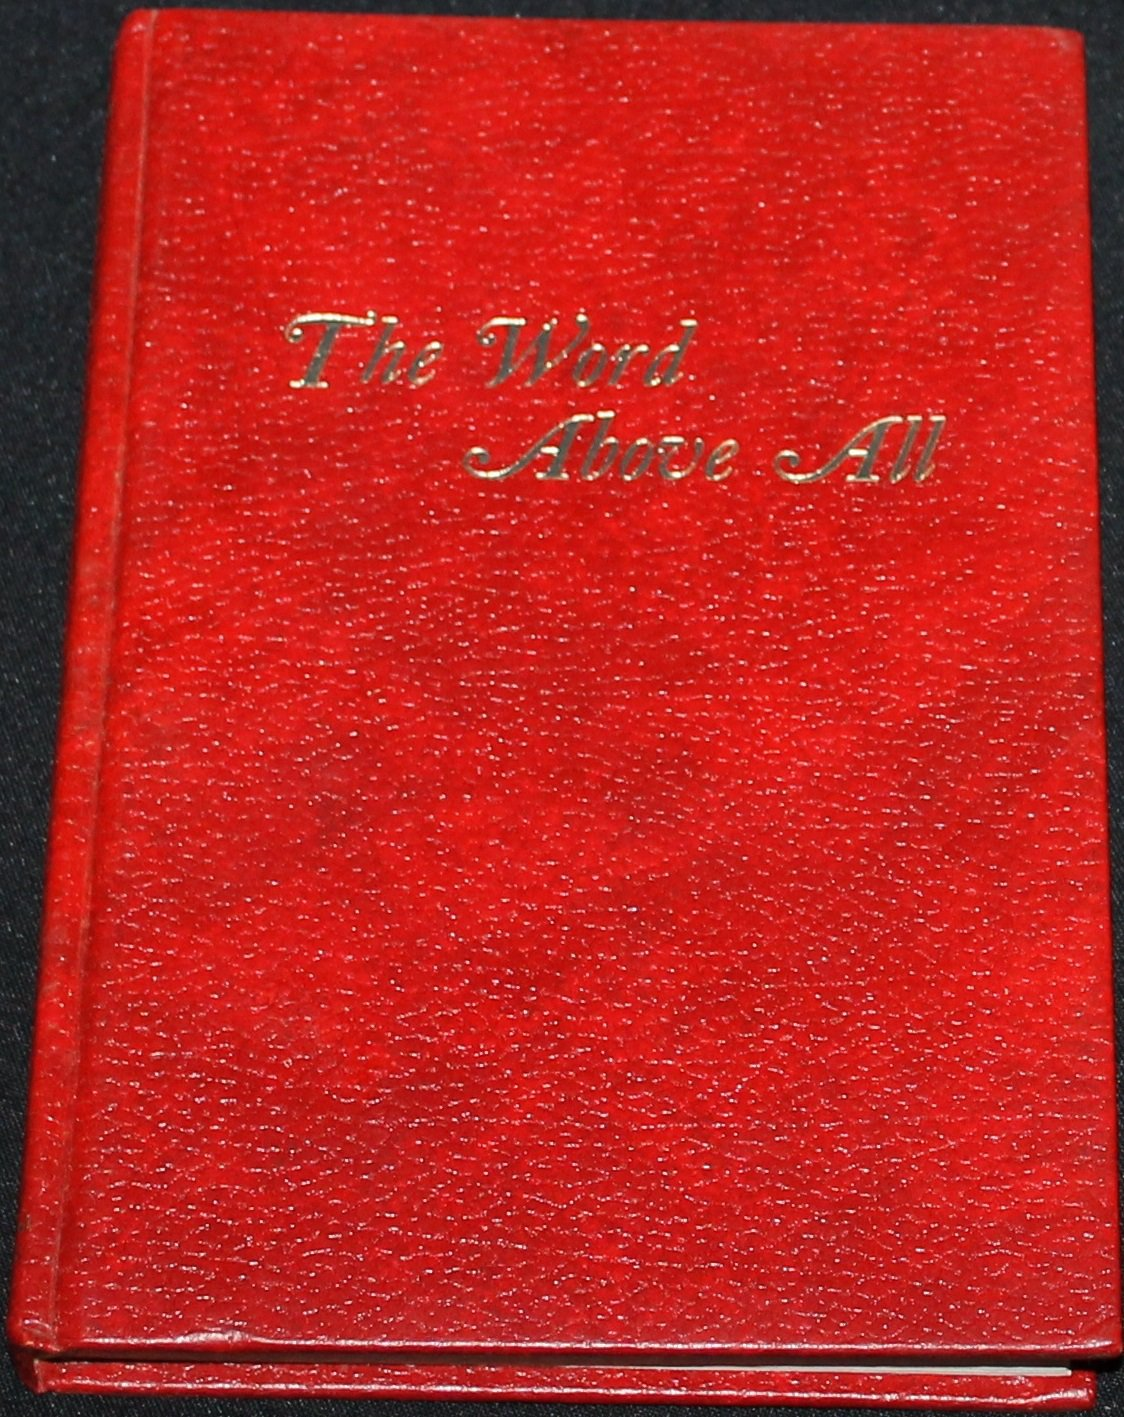 1971 The Word Above All - Christian hardcover book by Oliver B. Greene word of God religious book